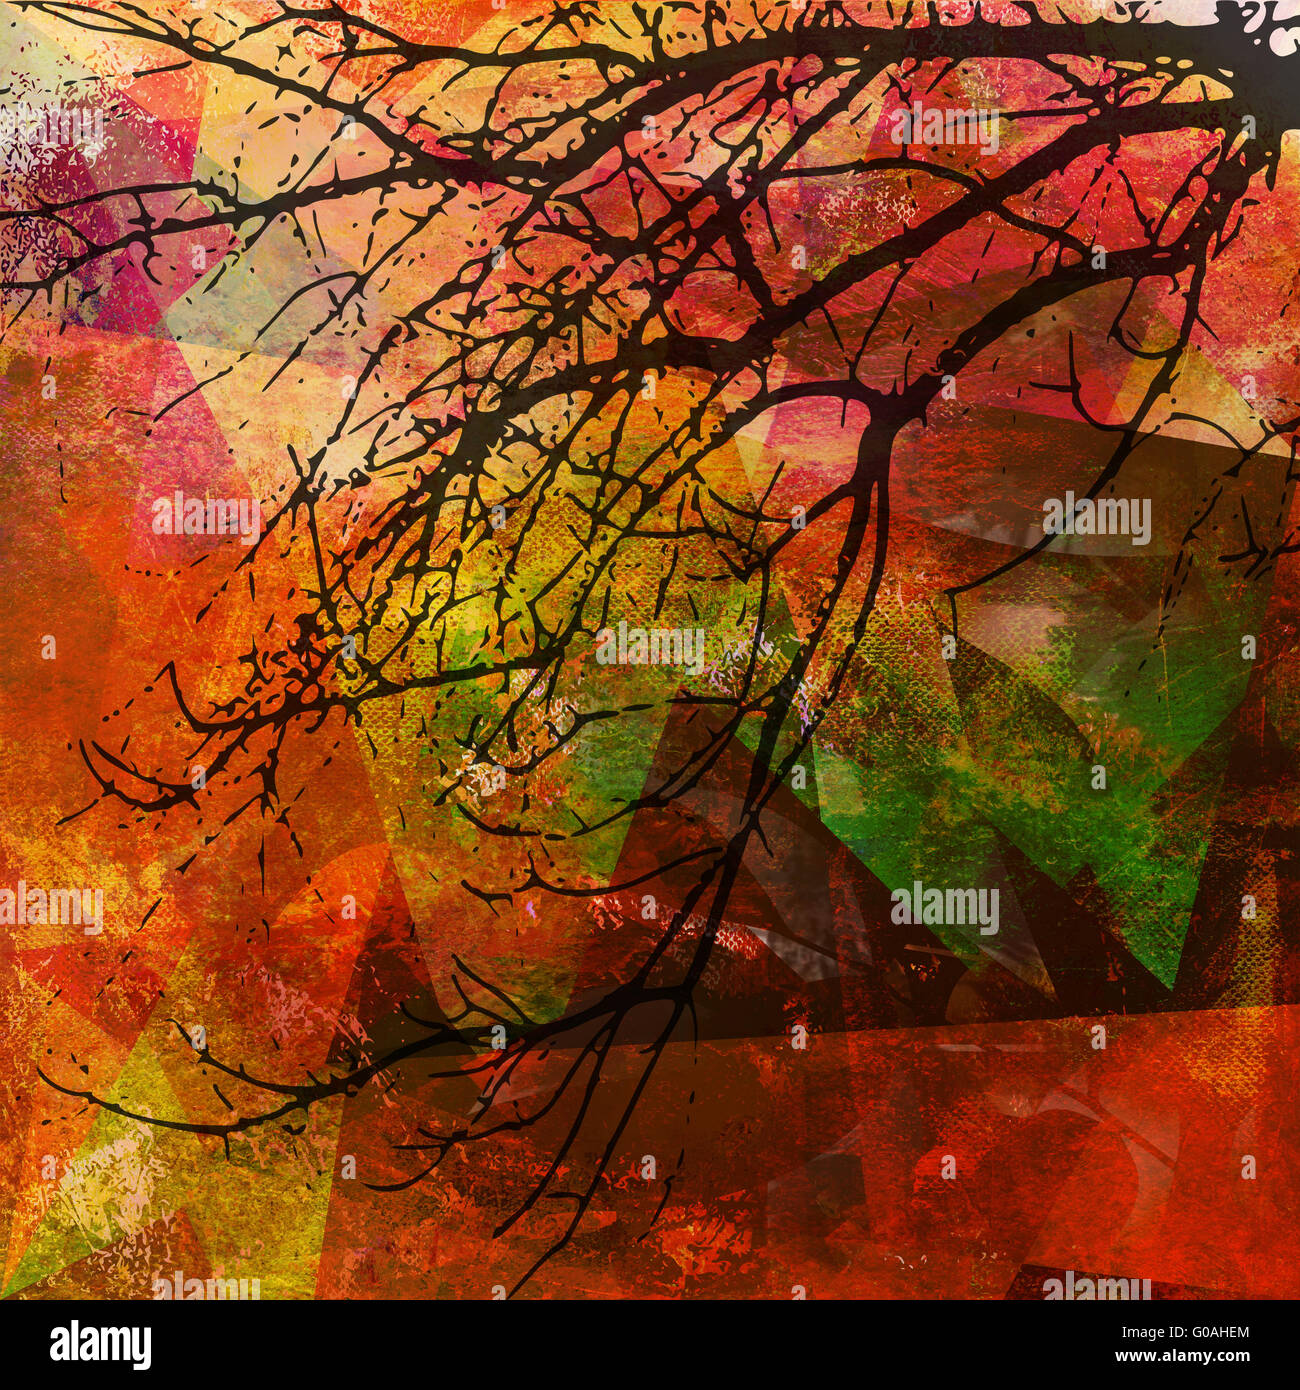 abstract patterned mixed media - Stock Image